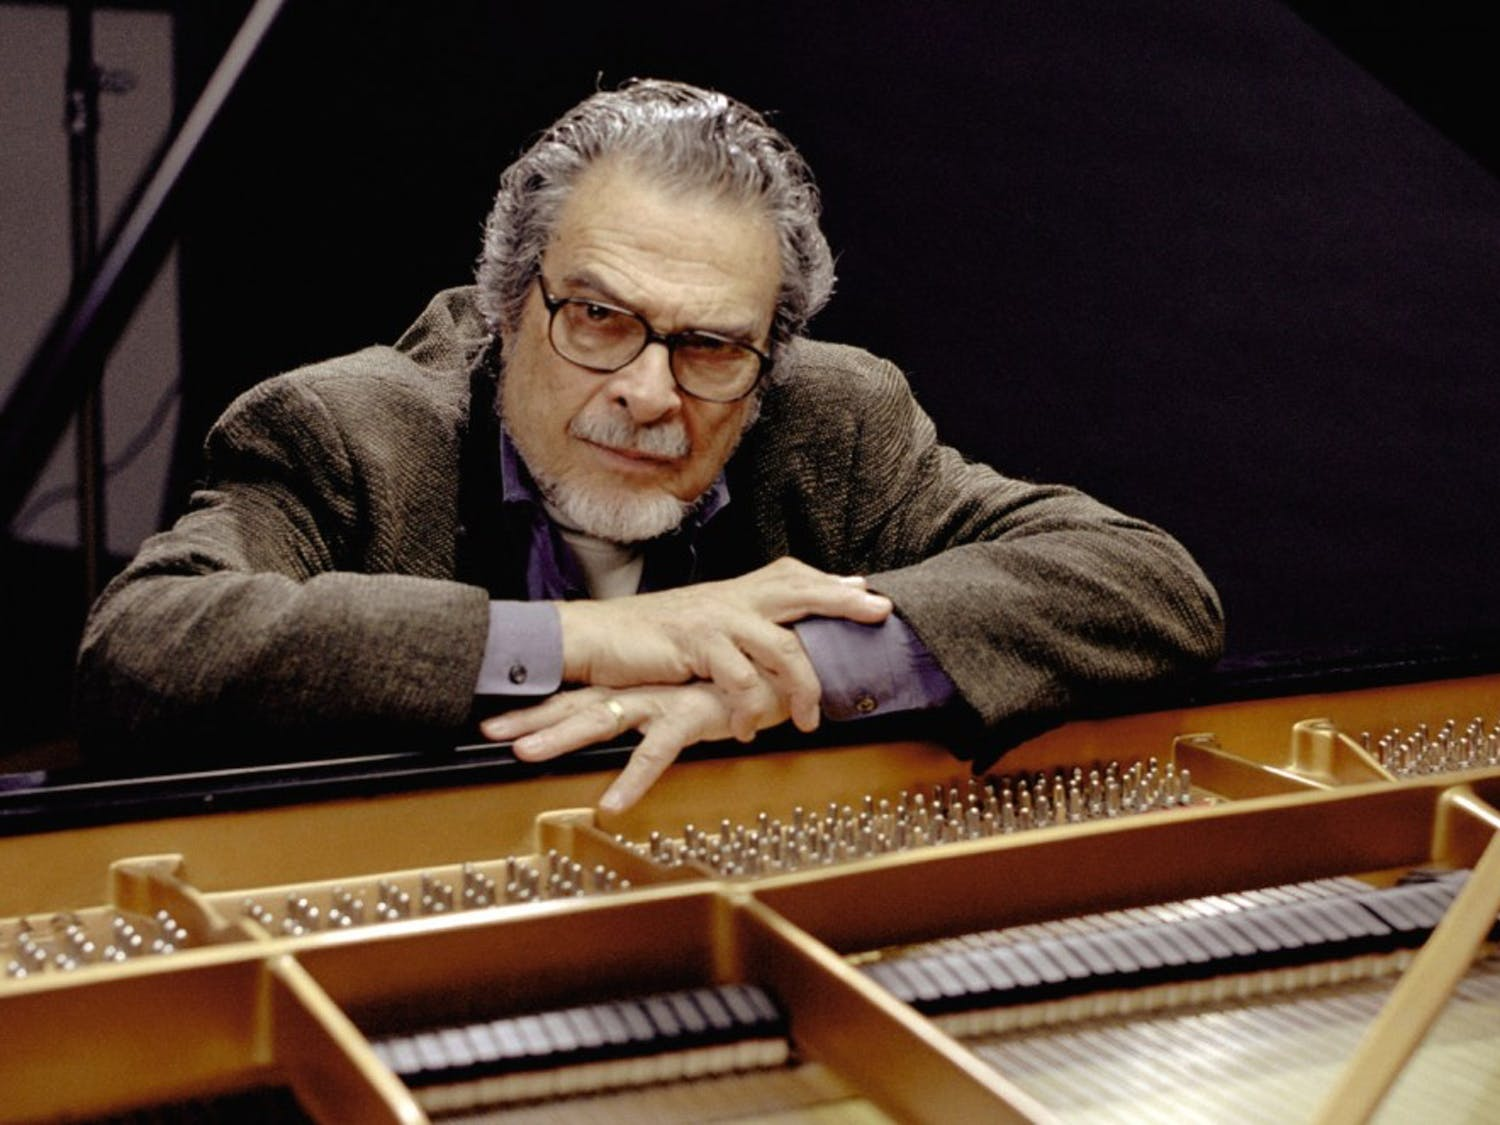 Pianist Leon Fleisher will perform in Memorial Hall tonight. Fleisher suffers from focal dystonia, a neurological condition that affects specific muscles. Photo courtesy of Carolina Performing Arts.